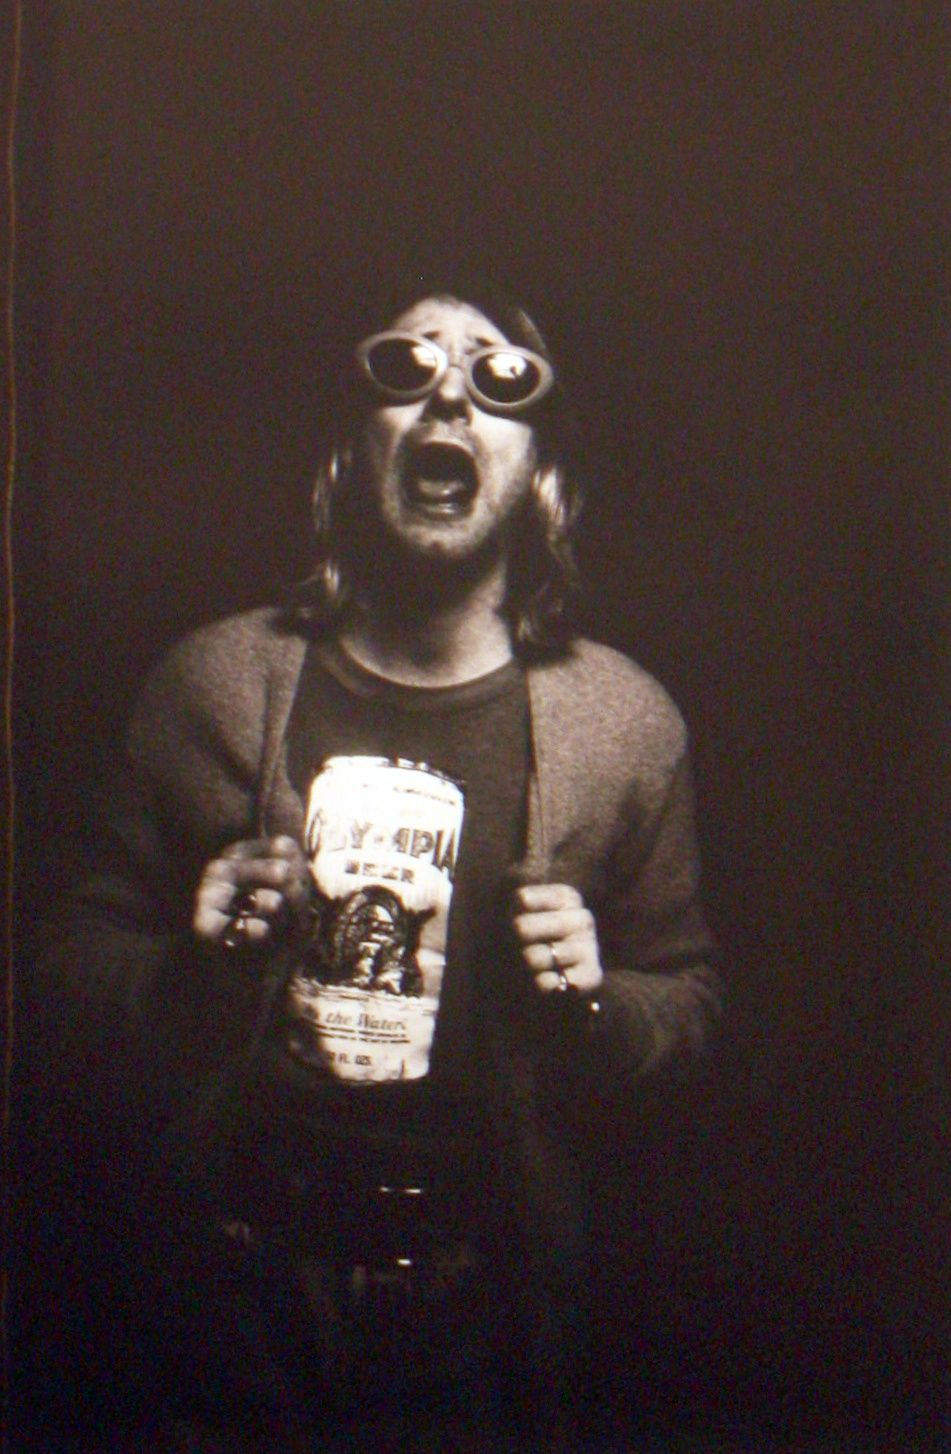 Expo Photographie Contemporaine: Youri Lenquette  « Kurt COBAIN – The Last Shooting »